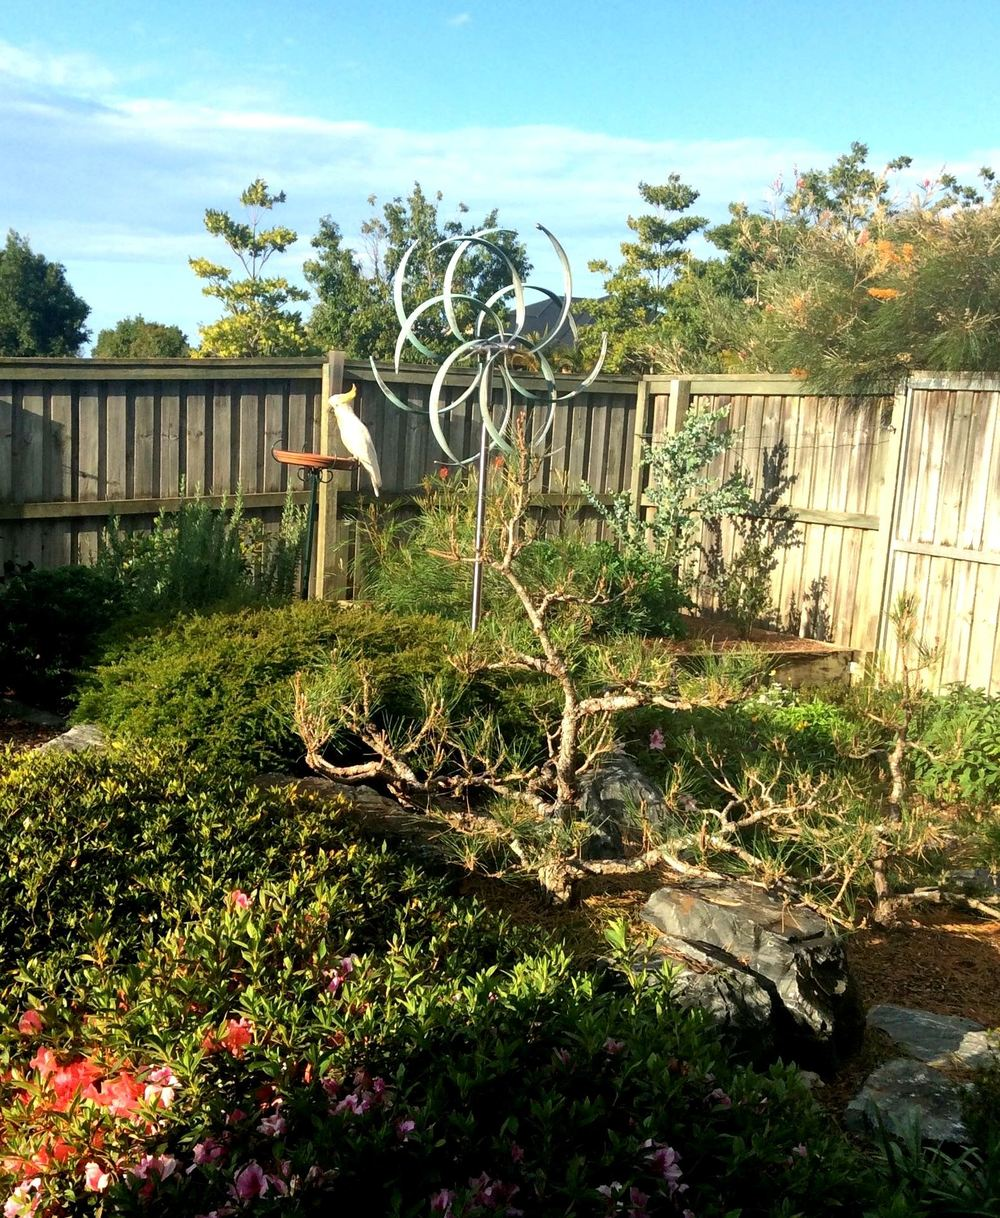 """As you can see, on the day Jim took the pictures a sulphur-crested cockatoo was visiting the garden. We are delighted on a daily basis by your amazing work and proudly tell visitors of your wonderful studio in Santa Fe. Many thanks for sending the Trancer sculpture all the way to Australia!"" - Jim & Christine, Brisbane, Australia"